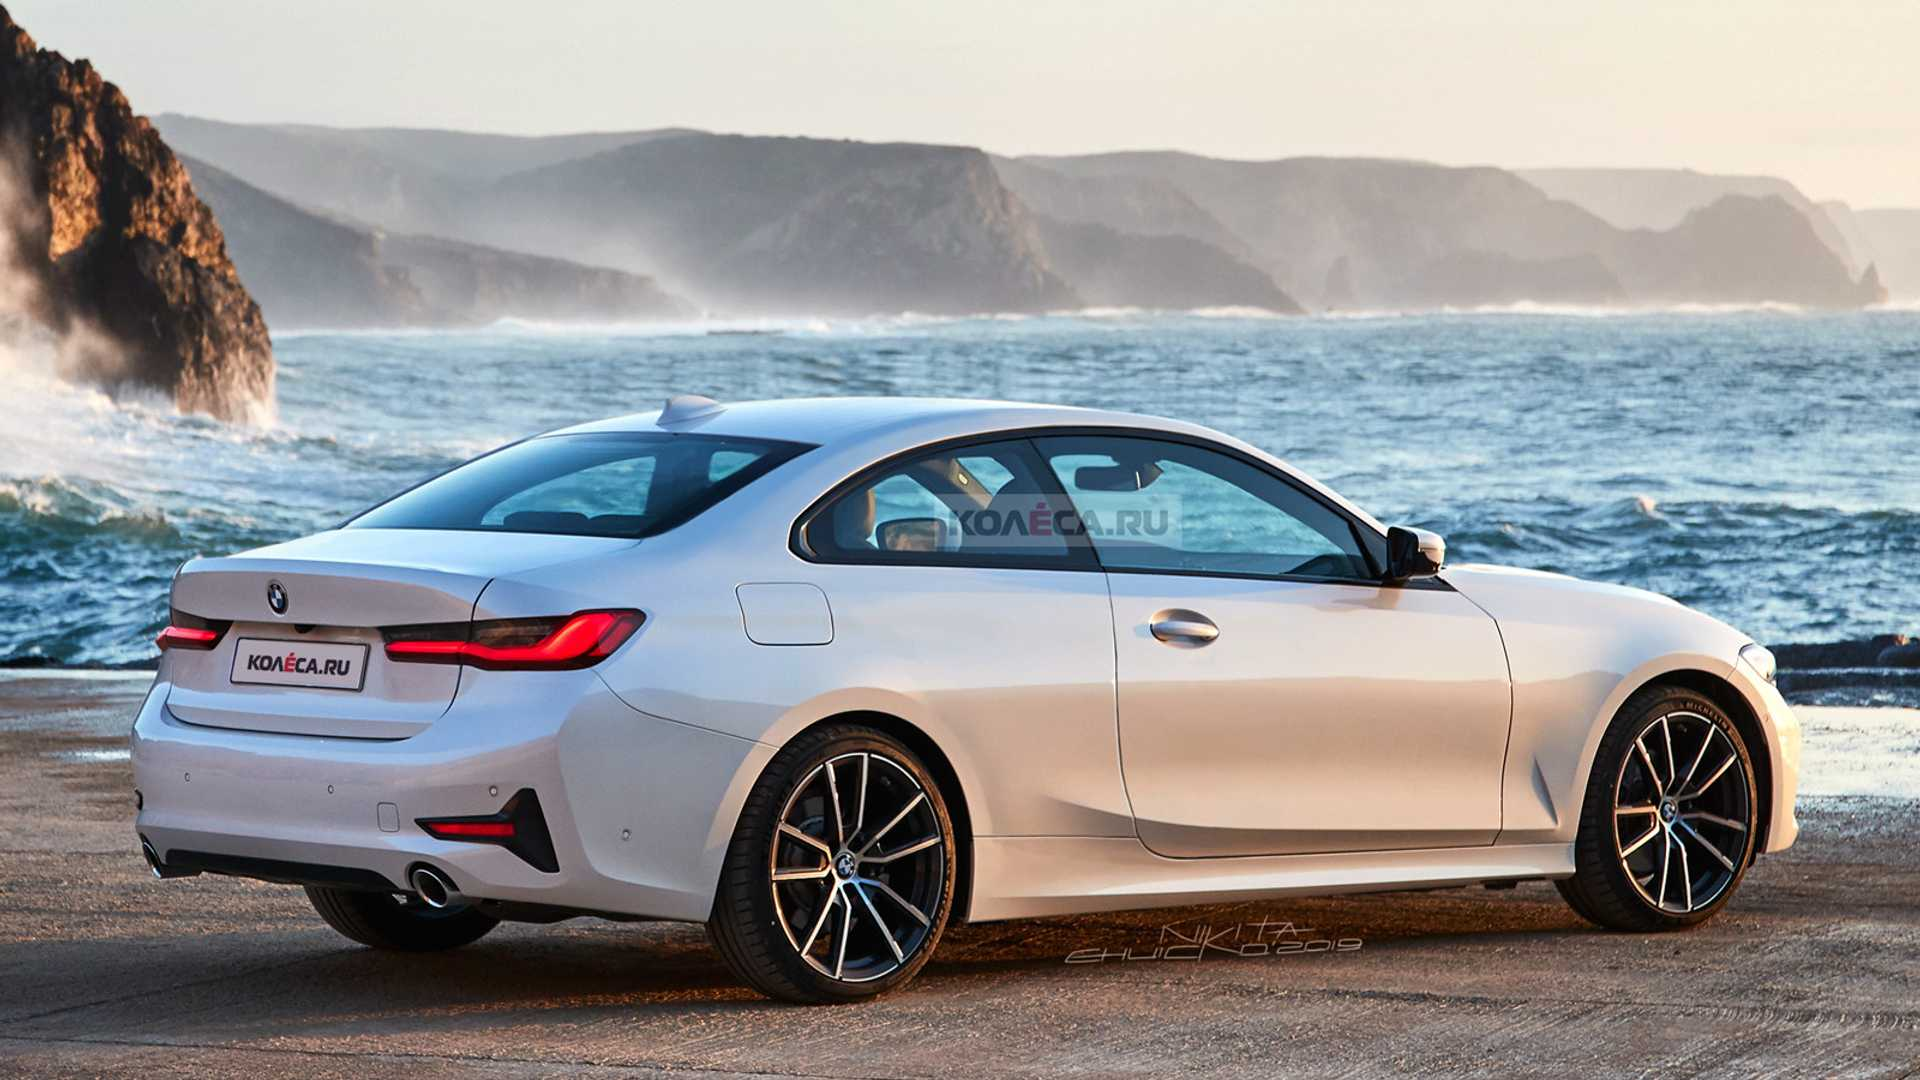 2021 bmw 4 series coupe rendering shows refined styling